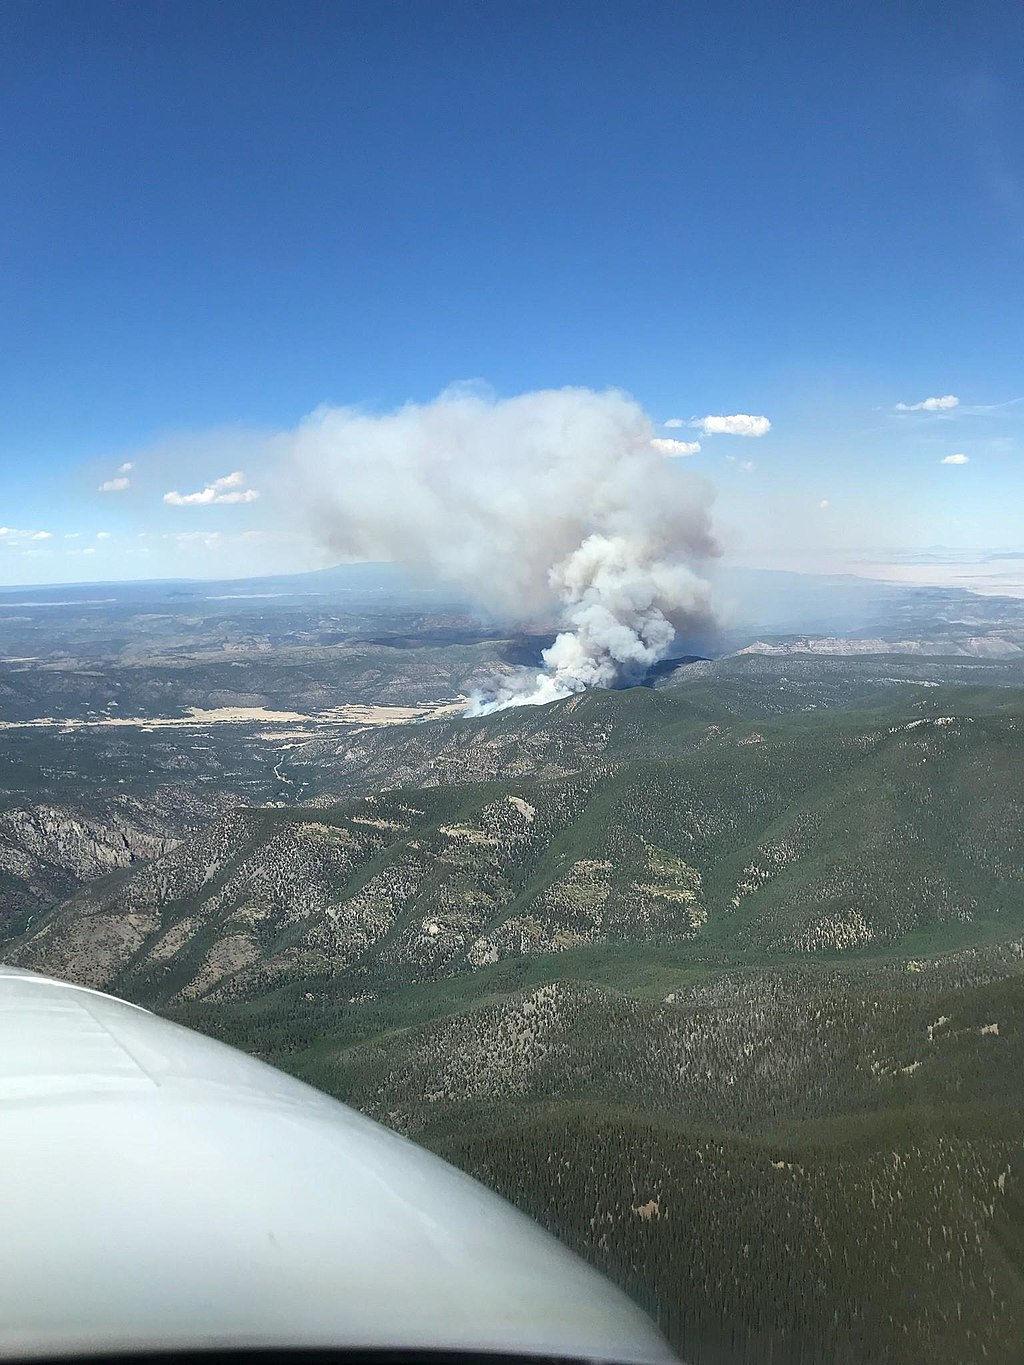 Seen from an airplane window, a plume of white smoke billows from the burn zone down below.